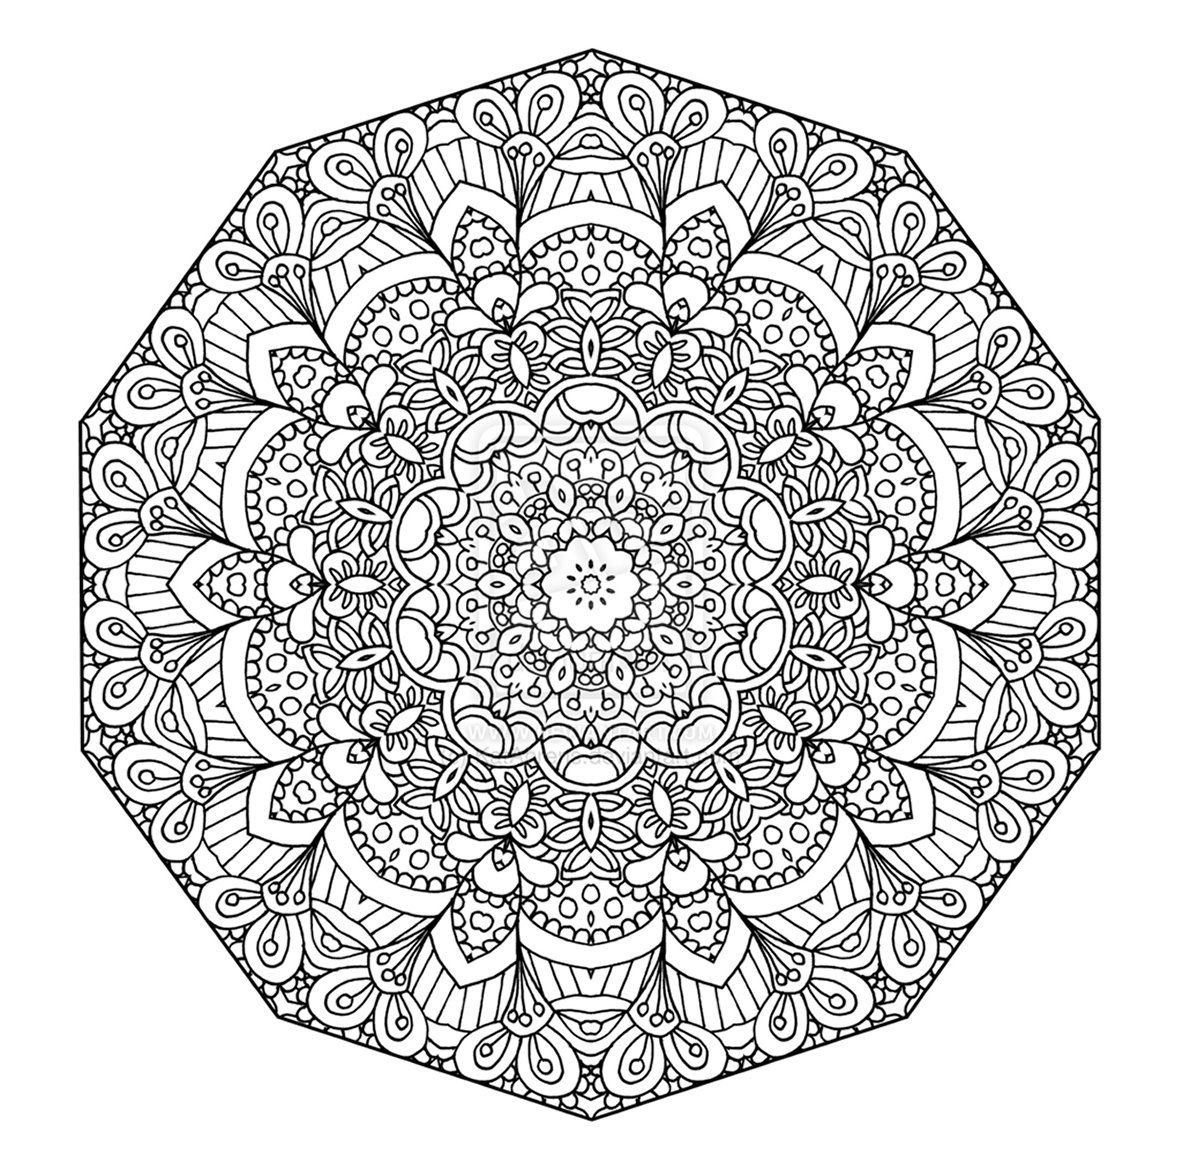 Detailed Coloring Pages For Teenagers | Detailed Abstract Coloring within Detailed Mandala Coloring Pages For Adults 29491